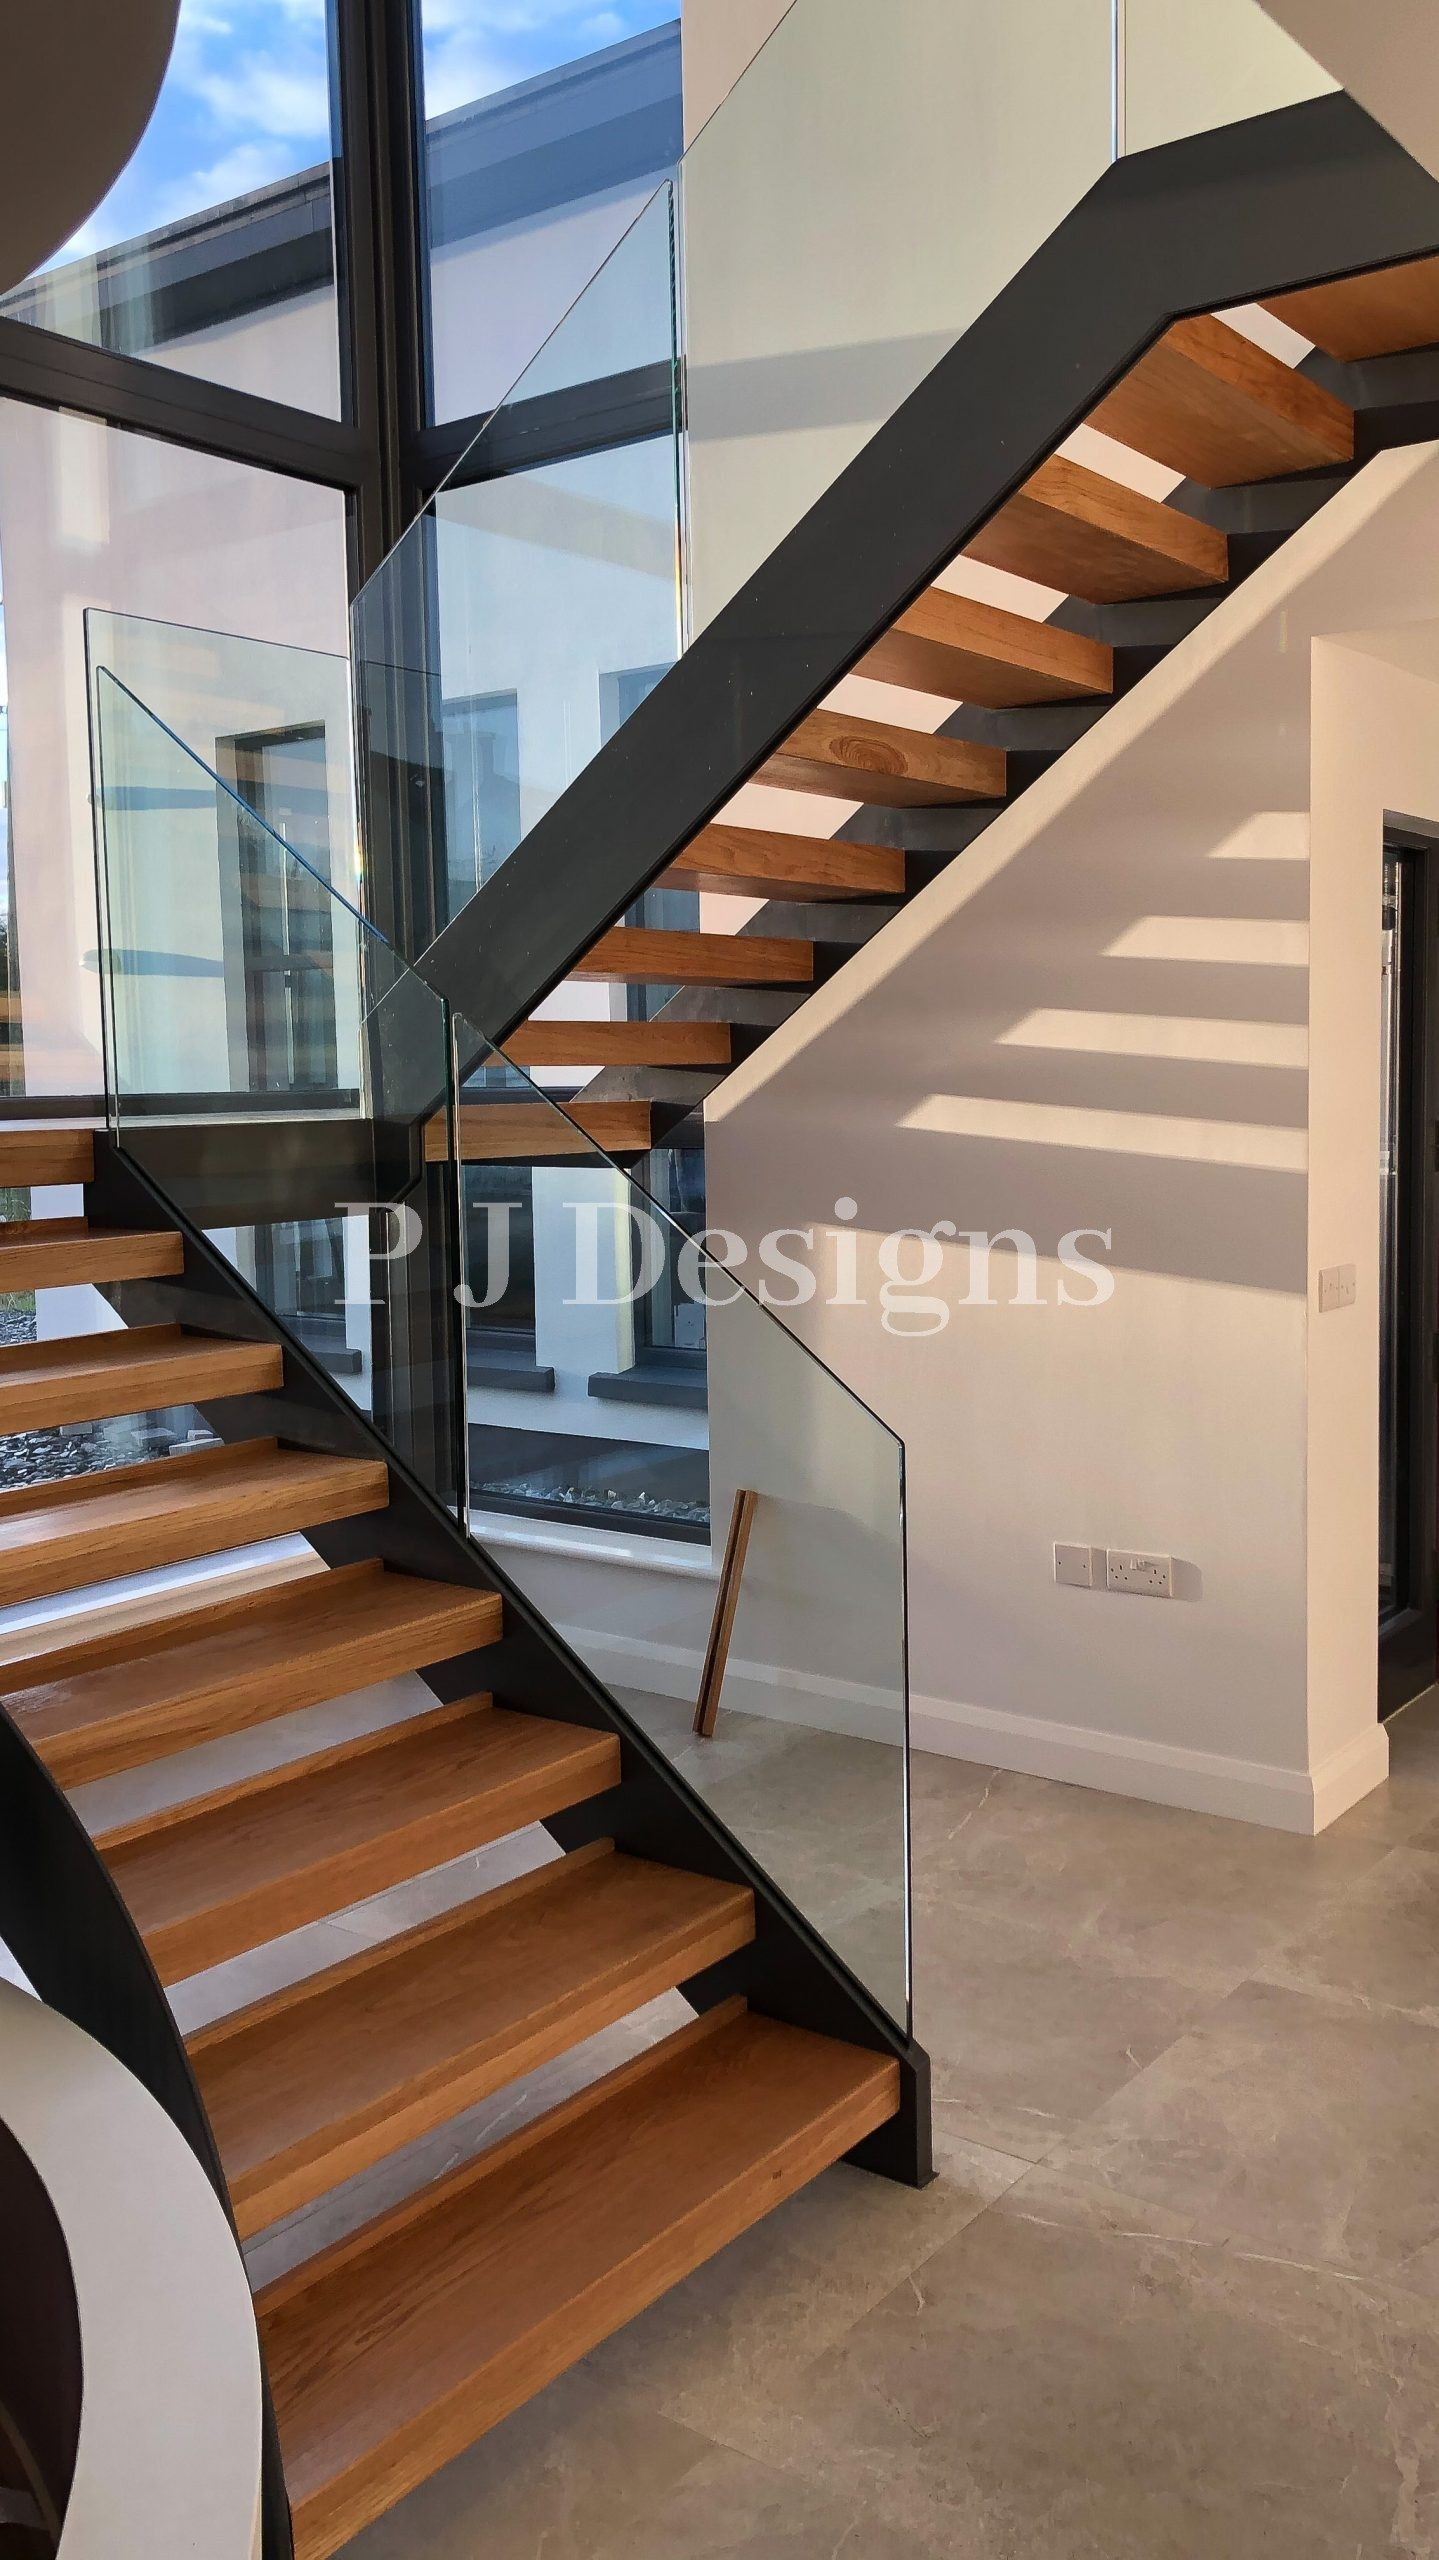 Double String Metal Staircase finished in a dark grey colour with oak steps and glass balustrade.